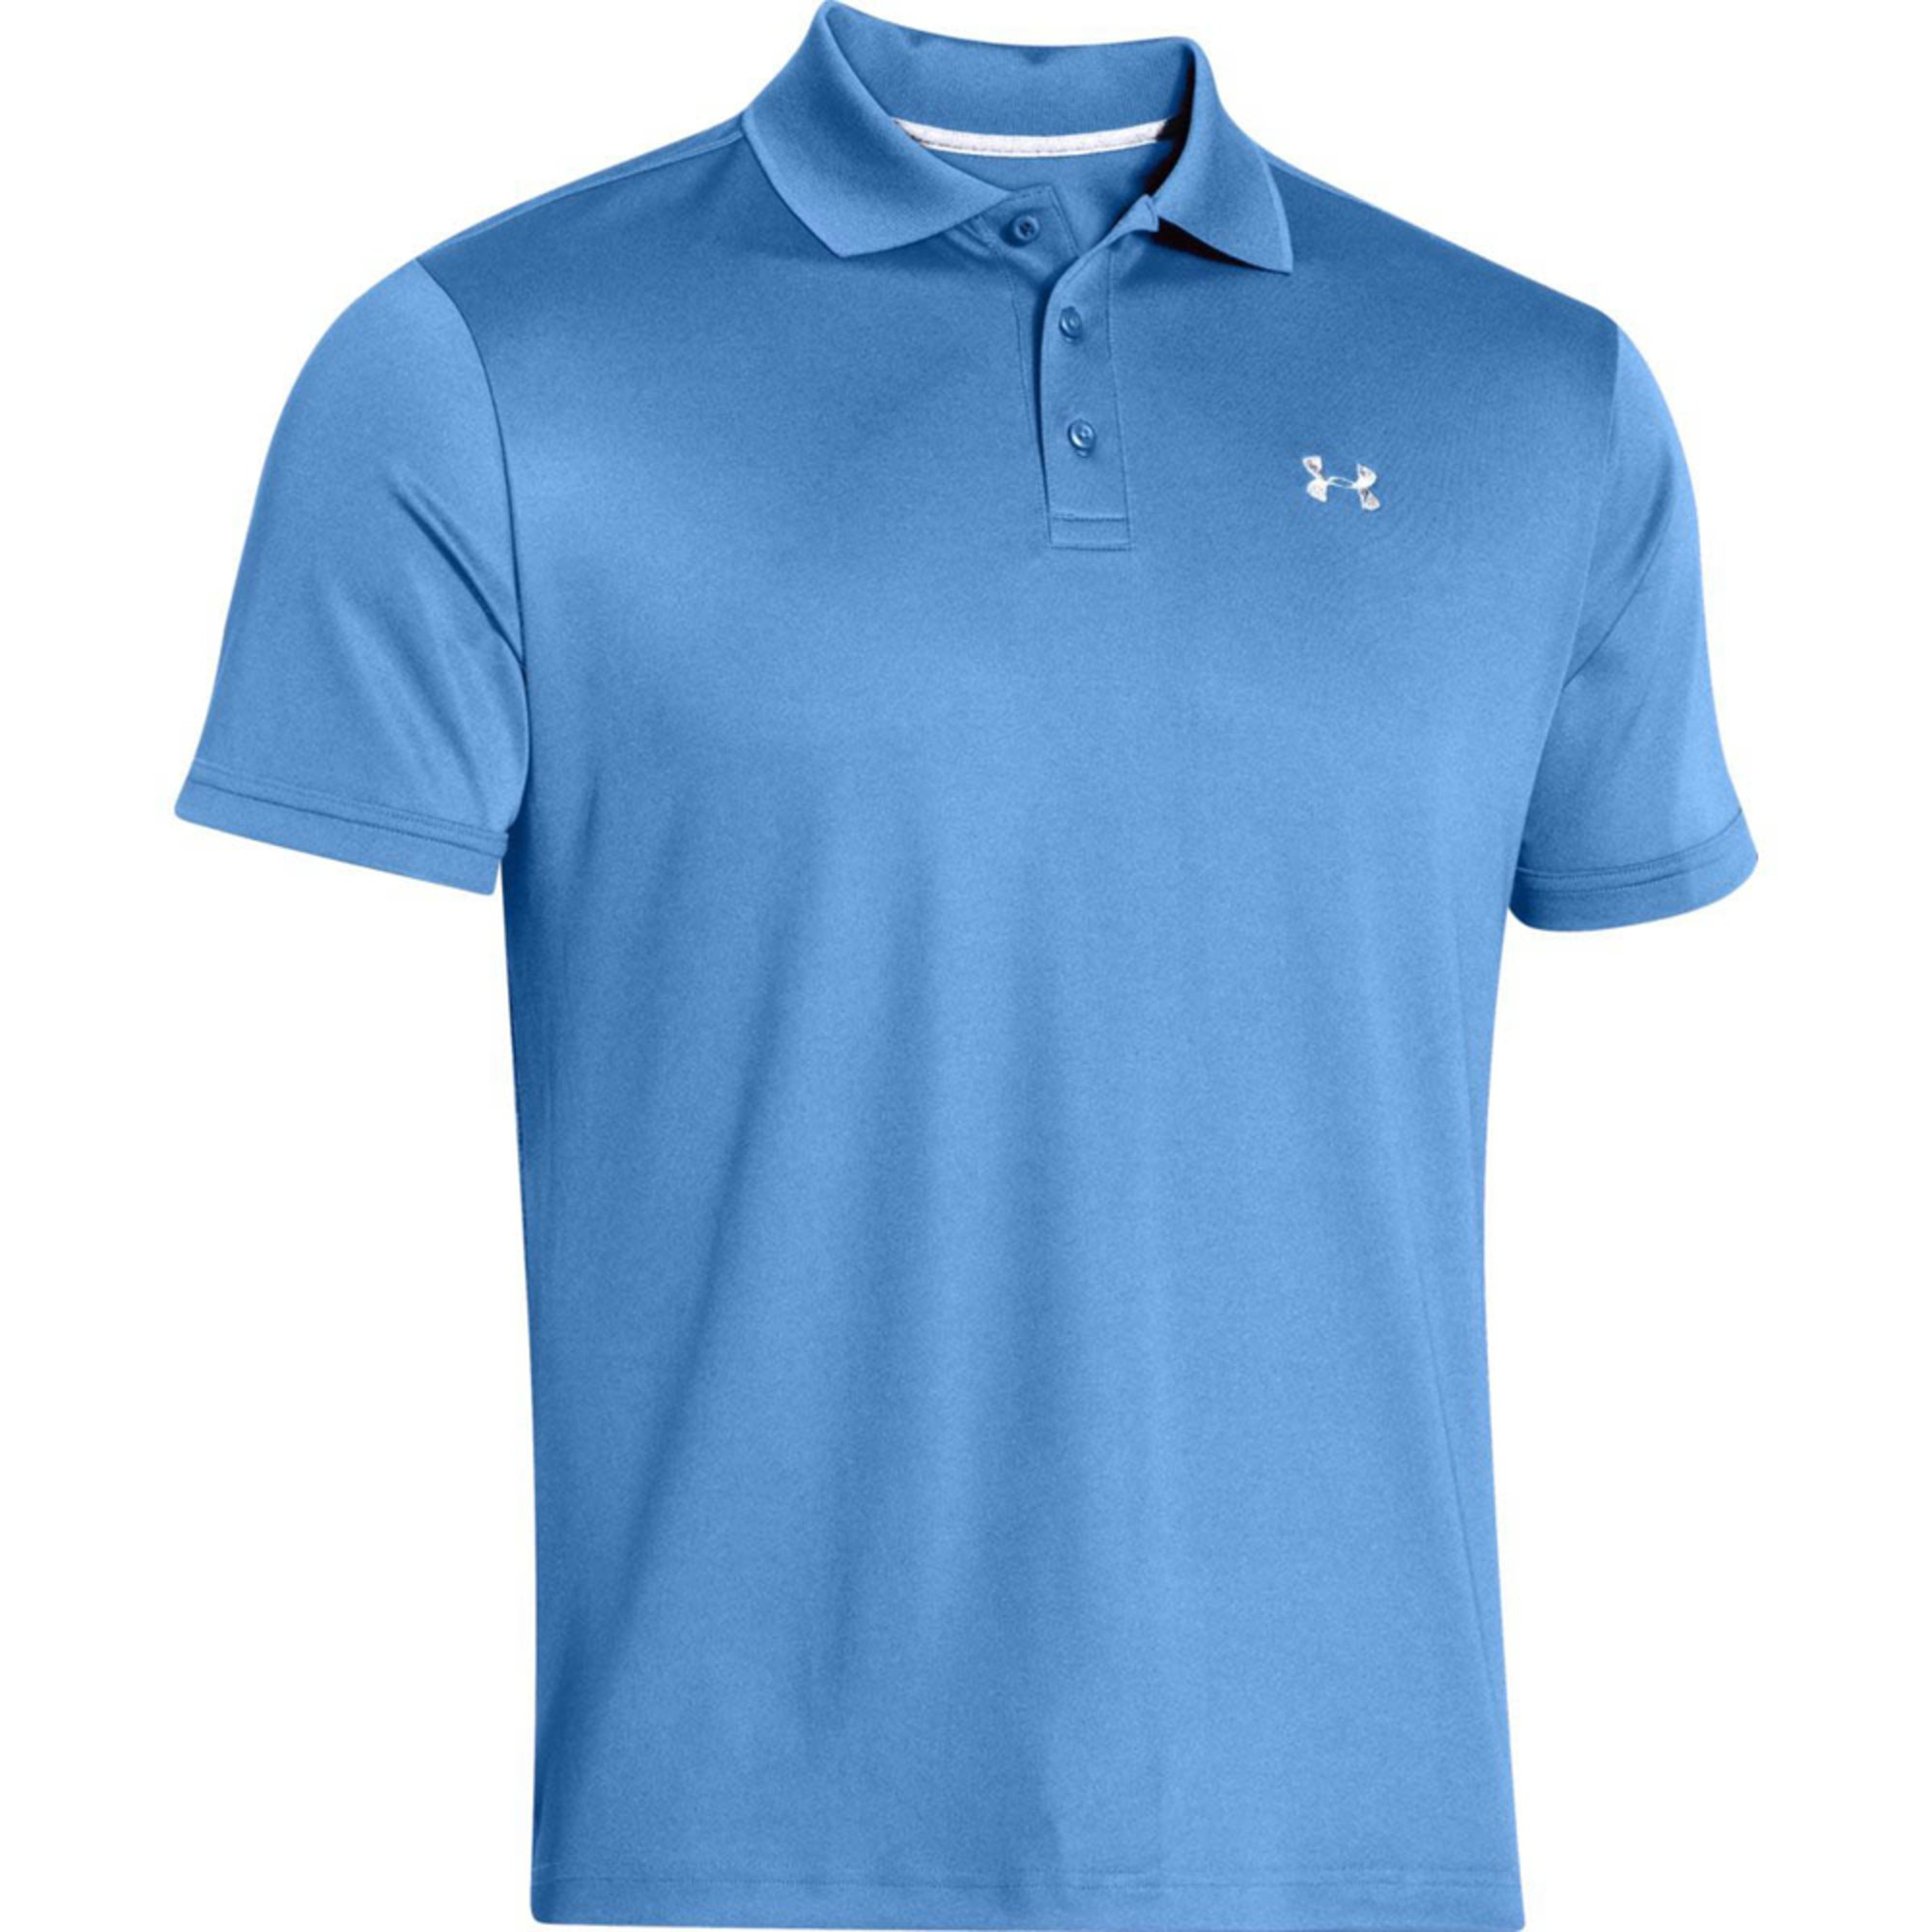 under armour under armour performance polo based on 0 reviews msrp $ ...